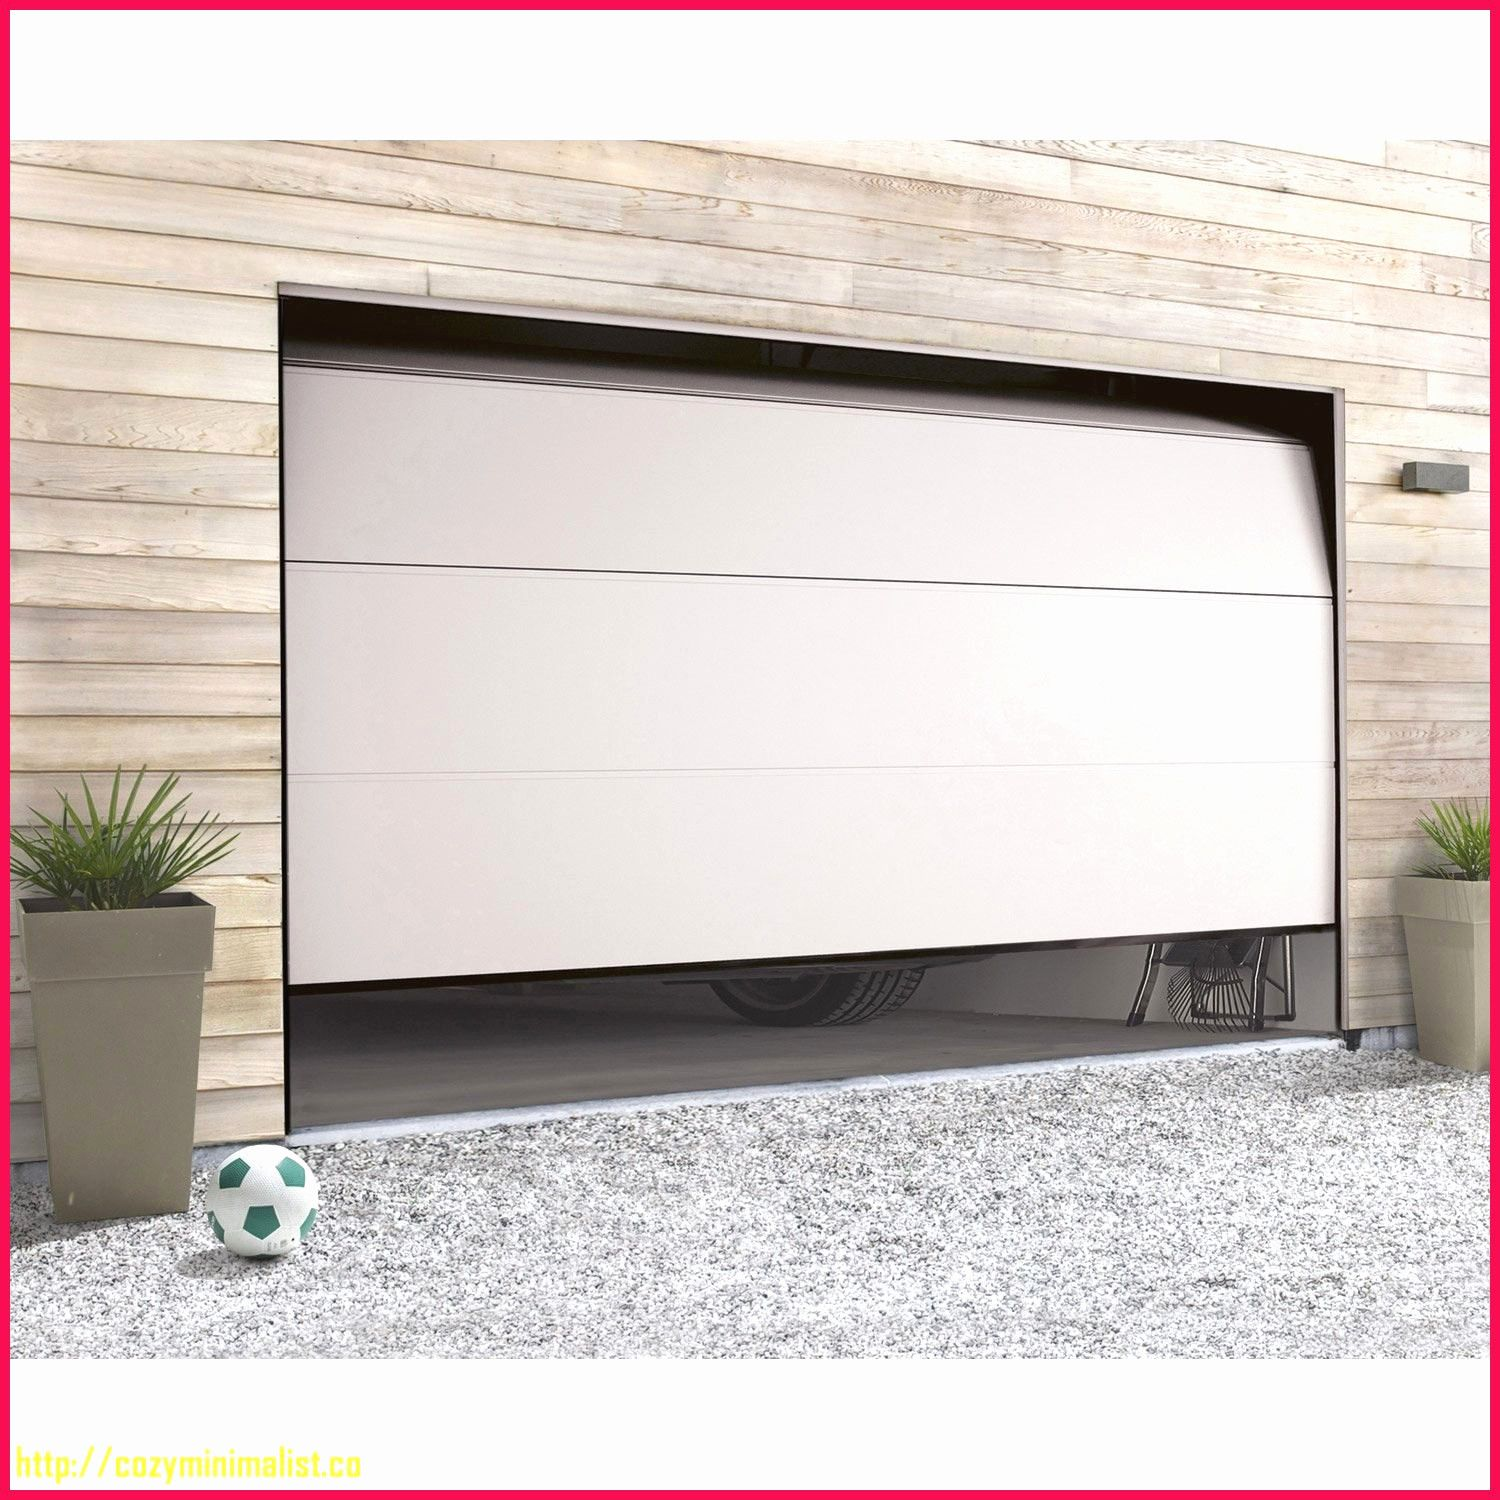 Awesome Porte Garage Coulissante Brico Depot Garage Doors Hormann Garage Doors Sectional Garage Doors